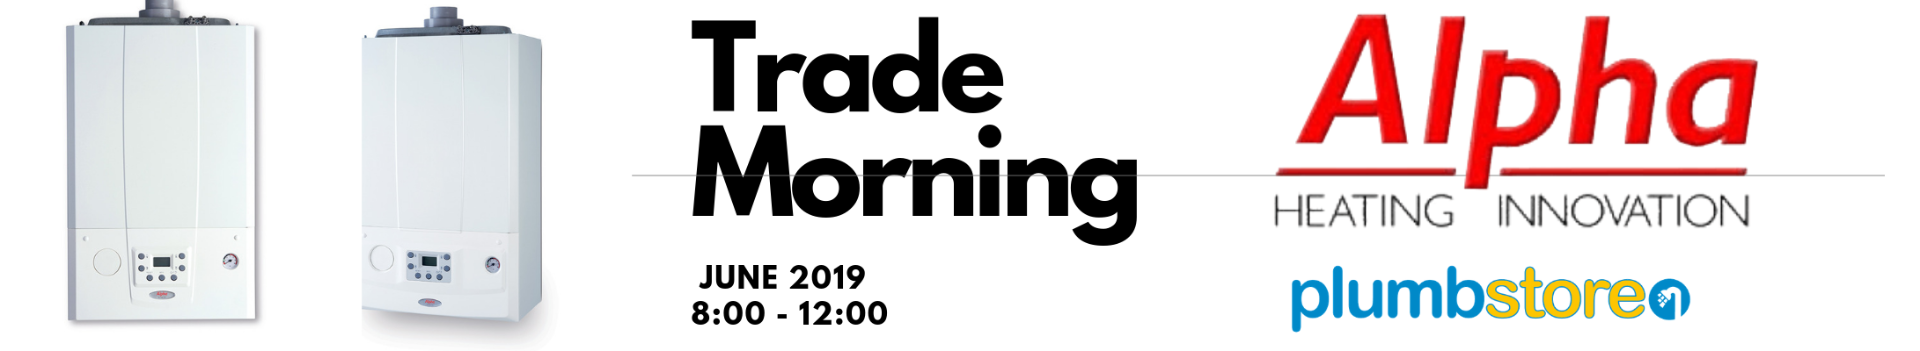 Alpha Heating trade morning banner featuring the etec and Evoke